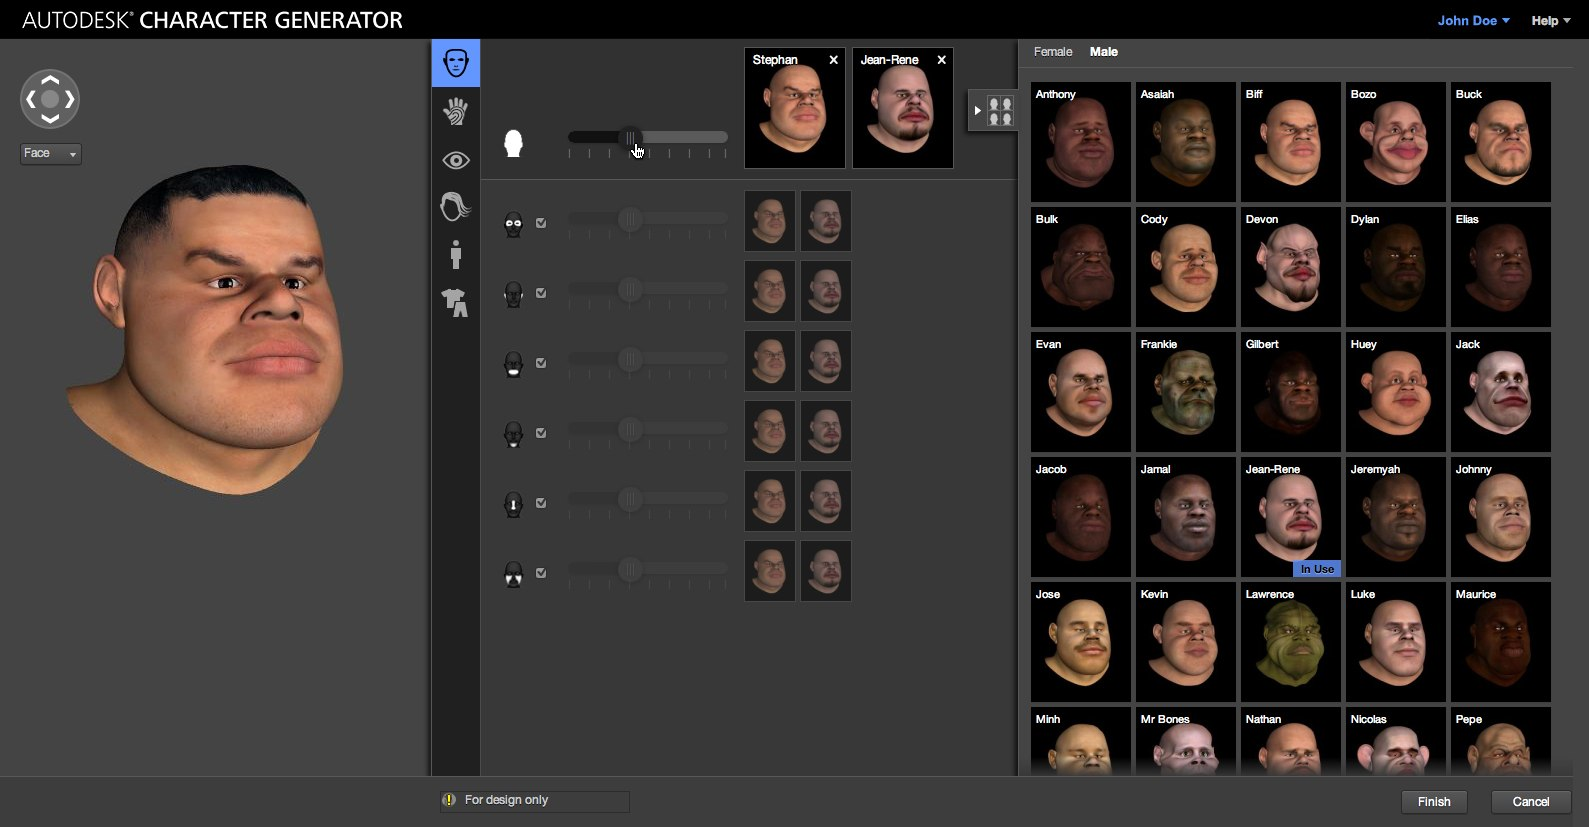 Autodesk Rolls Out Cloud Based 3d Character Generator